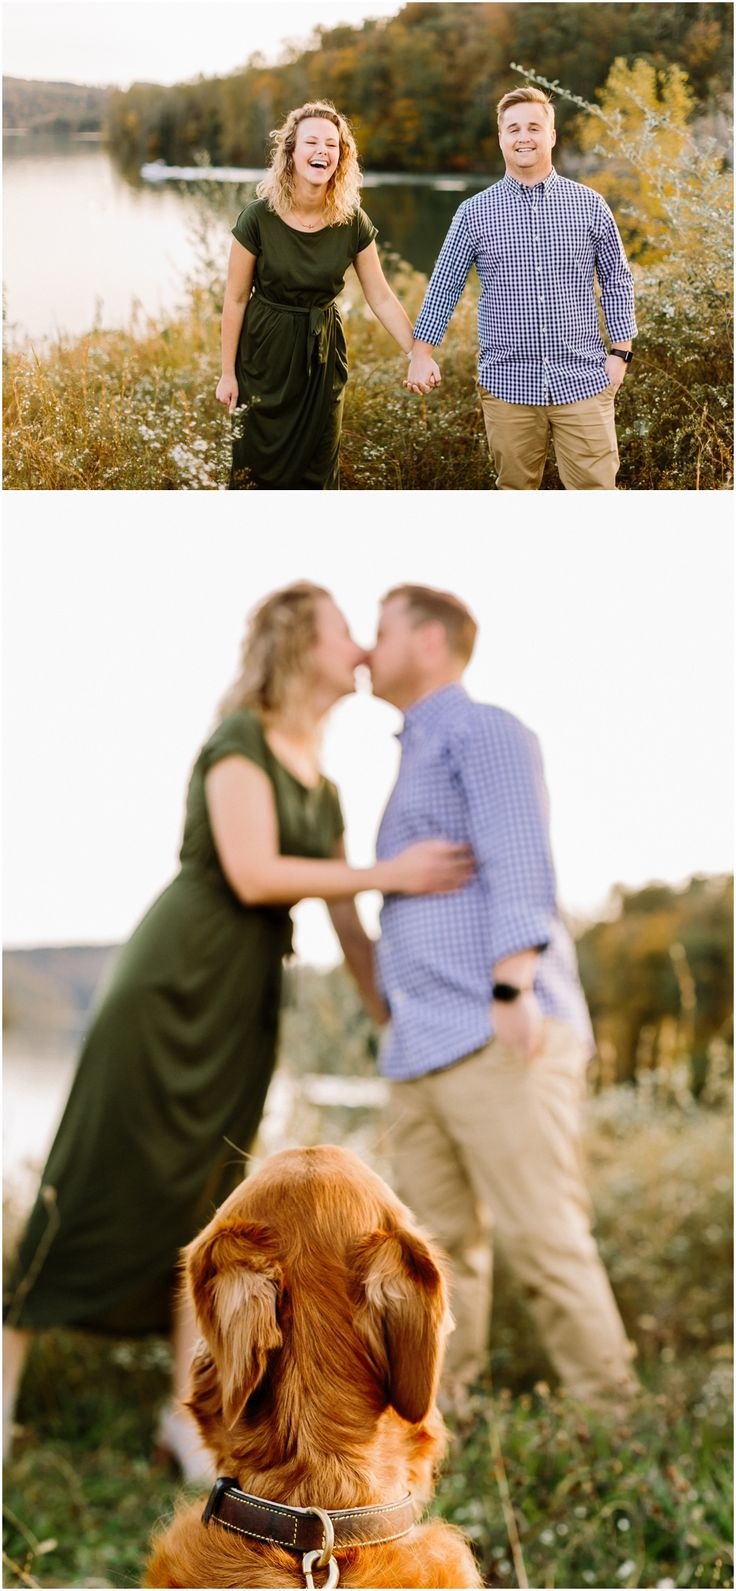 Cute fall engagement photos with their dog, a golden retriever, in Knoxvill TN – Knoxville Engagement Pictures